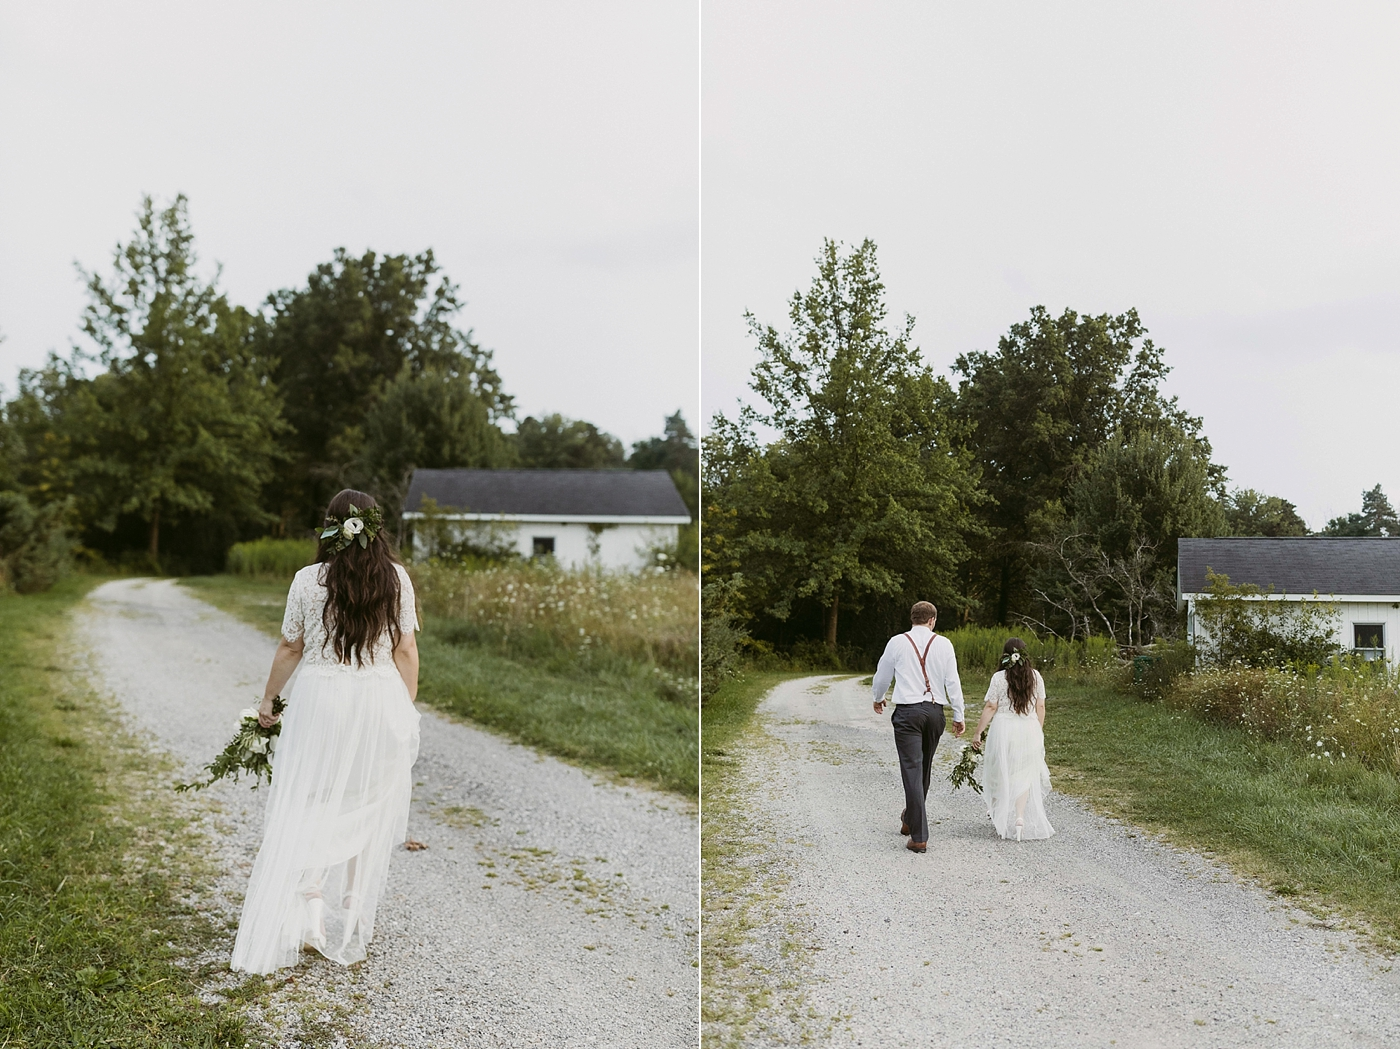 Meadow-Elopement-Ashley+Ben_MJPHOTO2018-292.jpg